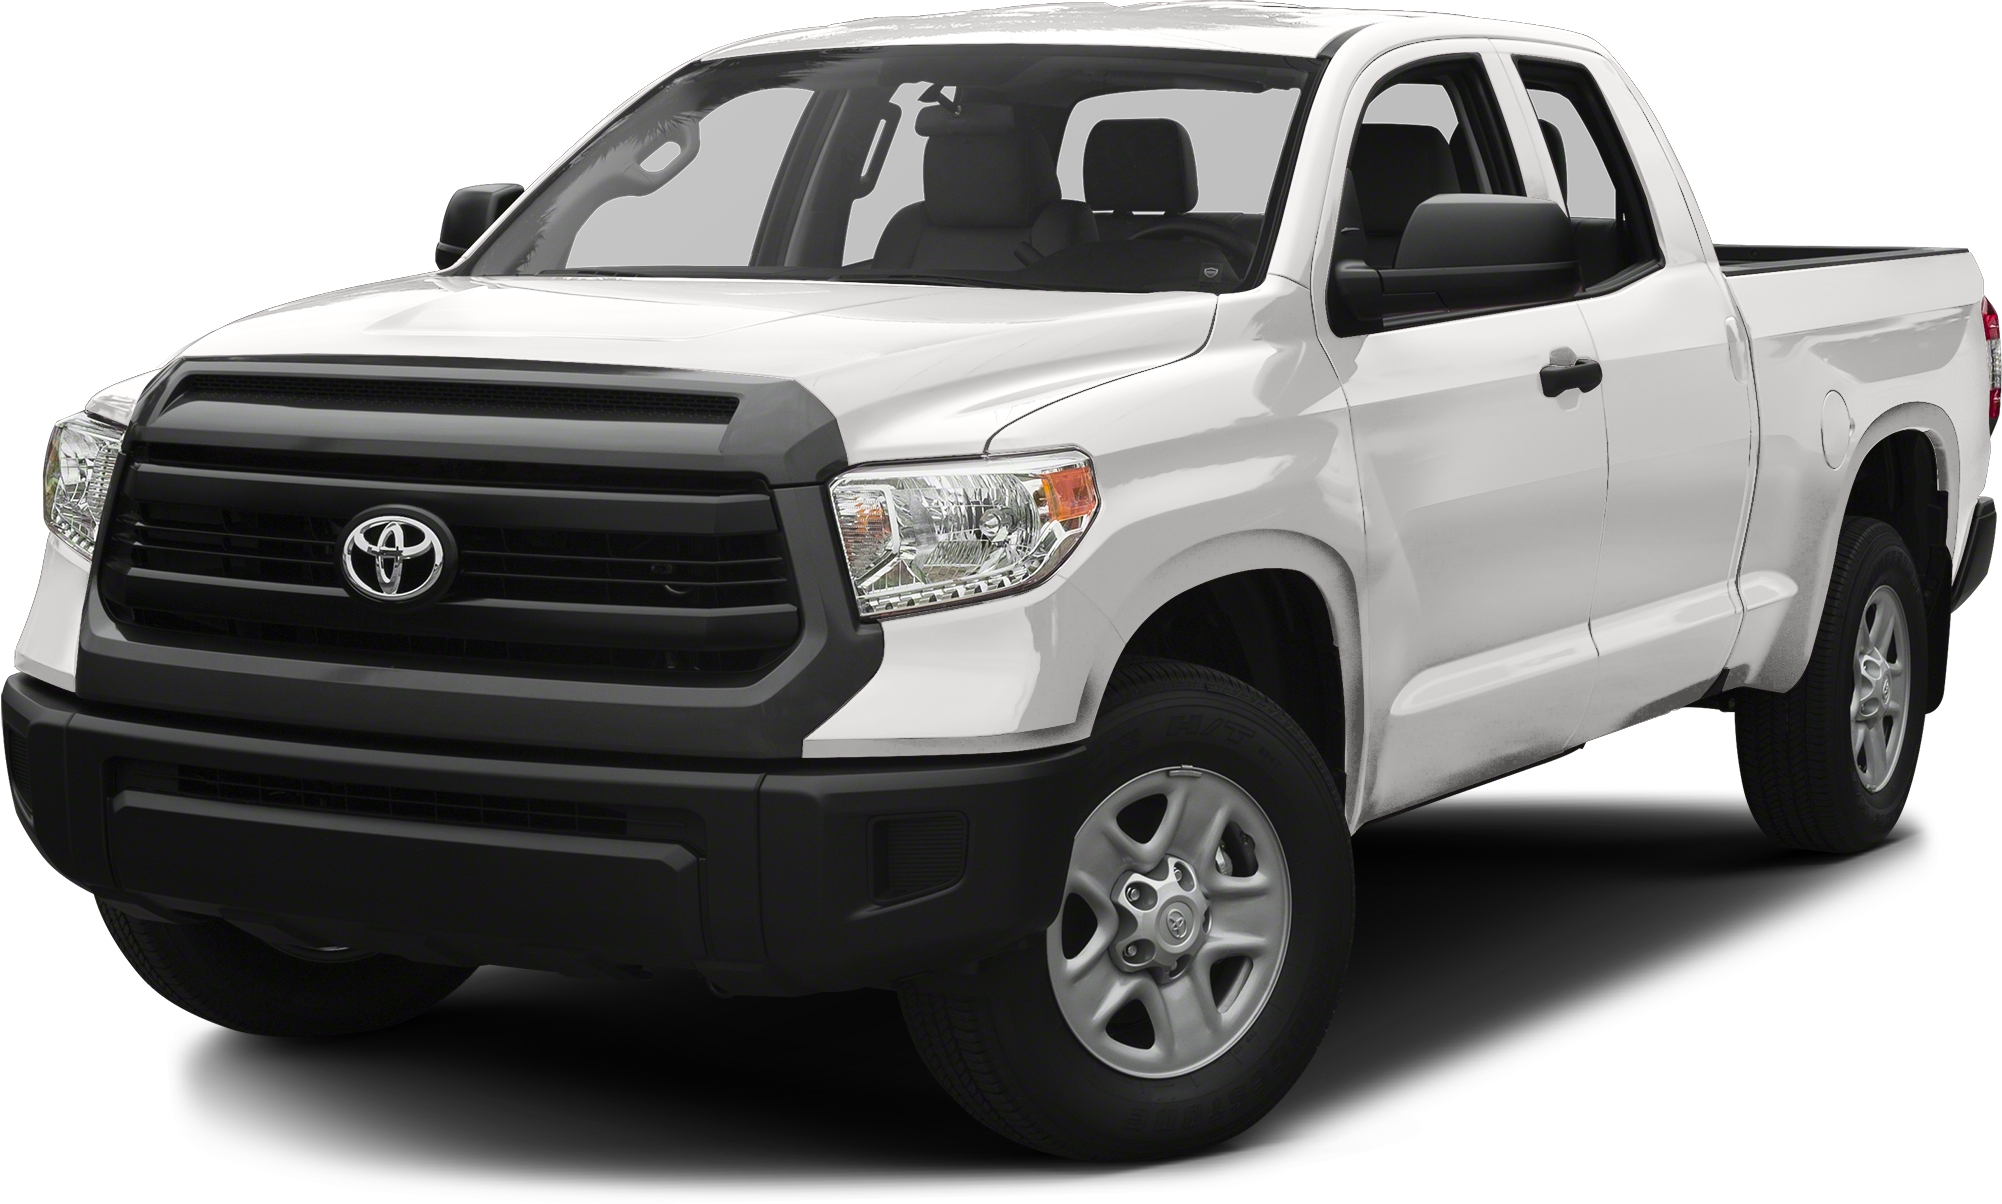 new toyota cars trucks suvs los angeles county toyota autos post. Black Bedroom Furniture Sets. Home Design Ideas